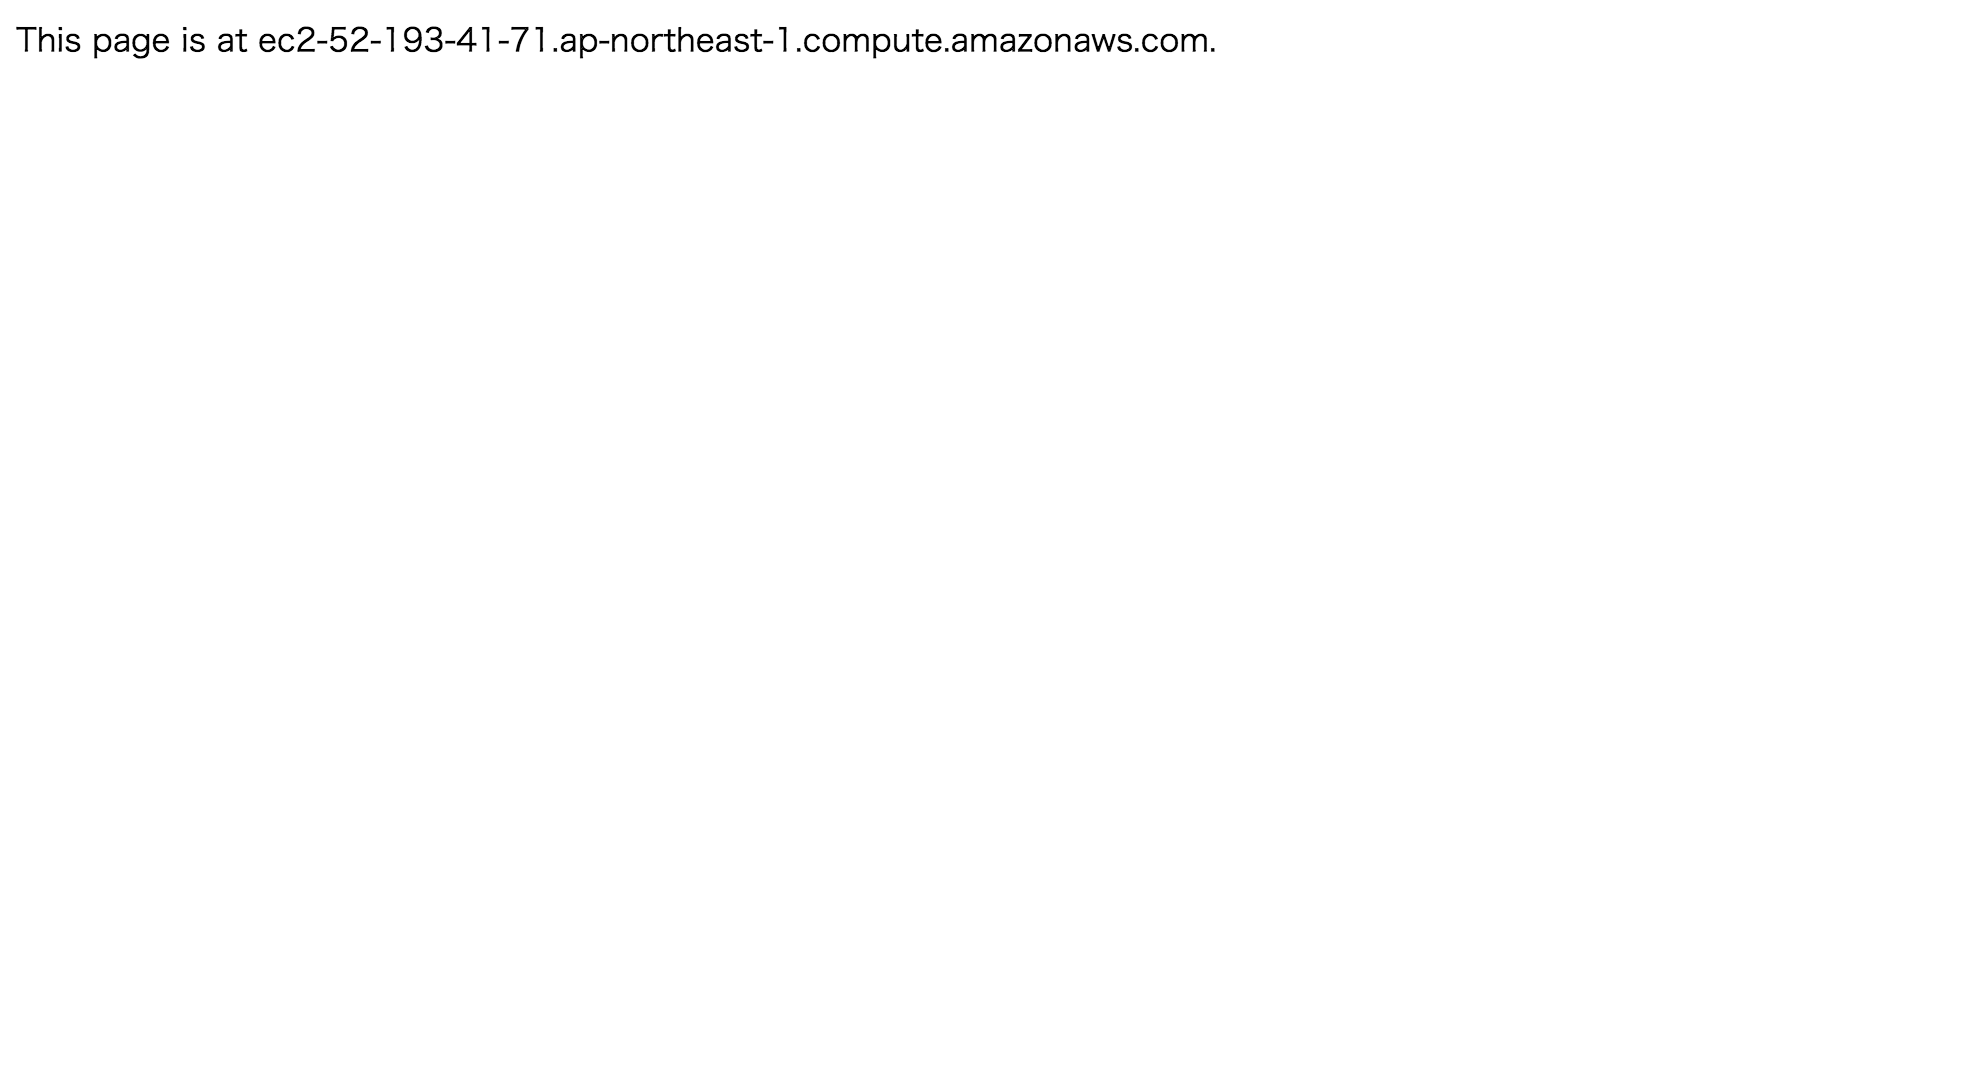 screencapture-bs-elb-demo-demo-1941673232-ap-northeast-1-elb-amazonaws-com-1459648979785.png (57.7 kB)